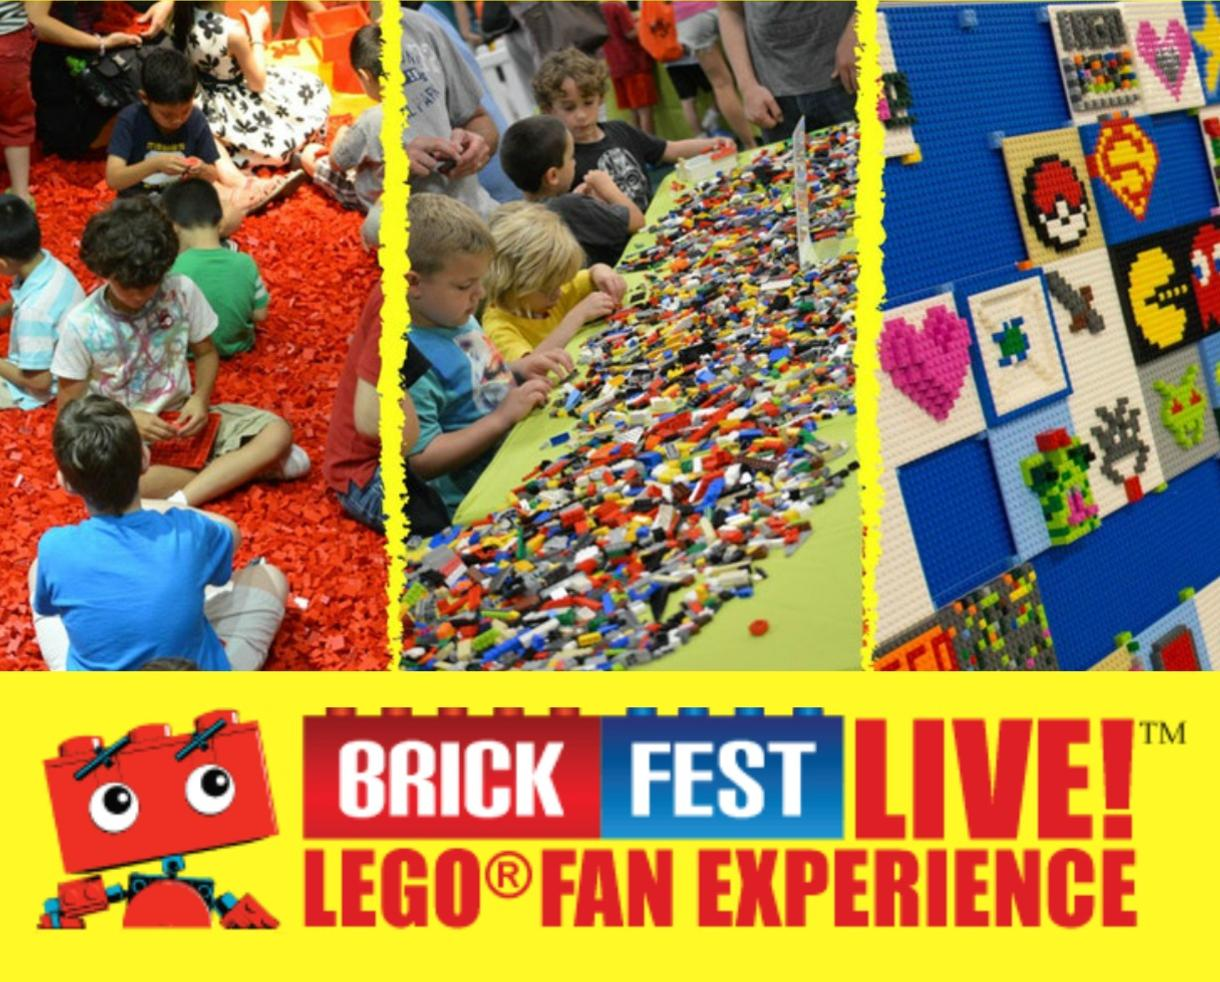 $15 for Baltimore Brick Fest Live LEGO® Fan Experience Standard Ticket + LEGO E-Book OR $21 for VIP Ticket - November 4th & 5th at Maryland State Fairgrounds (Up to 70% Off)